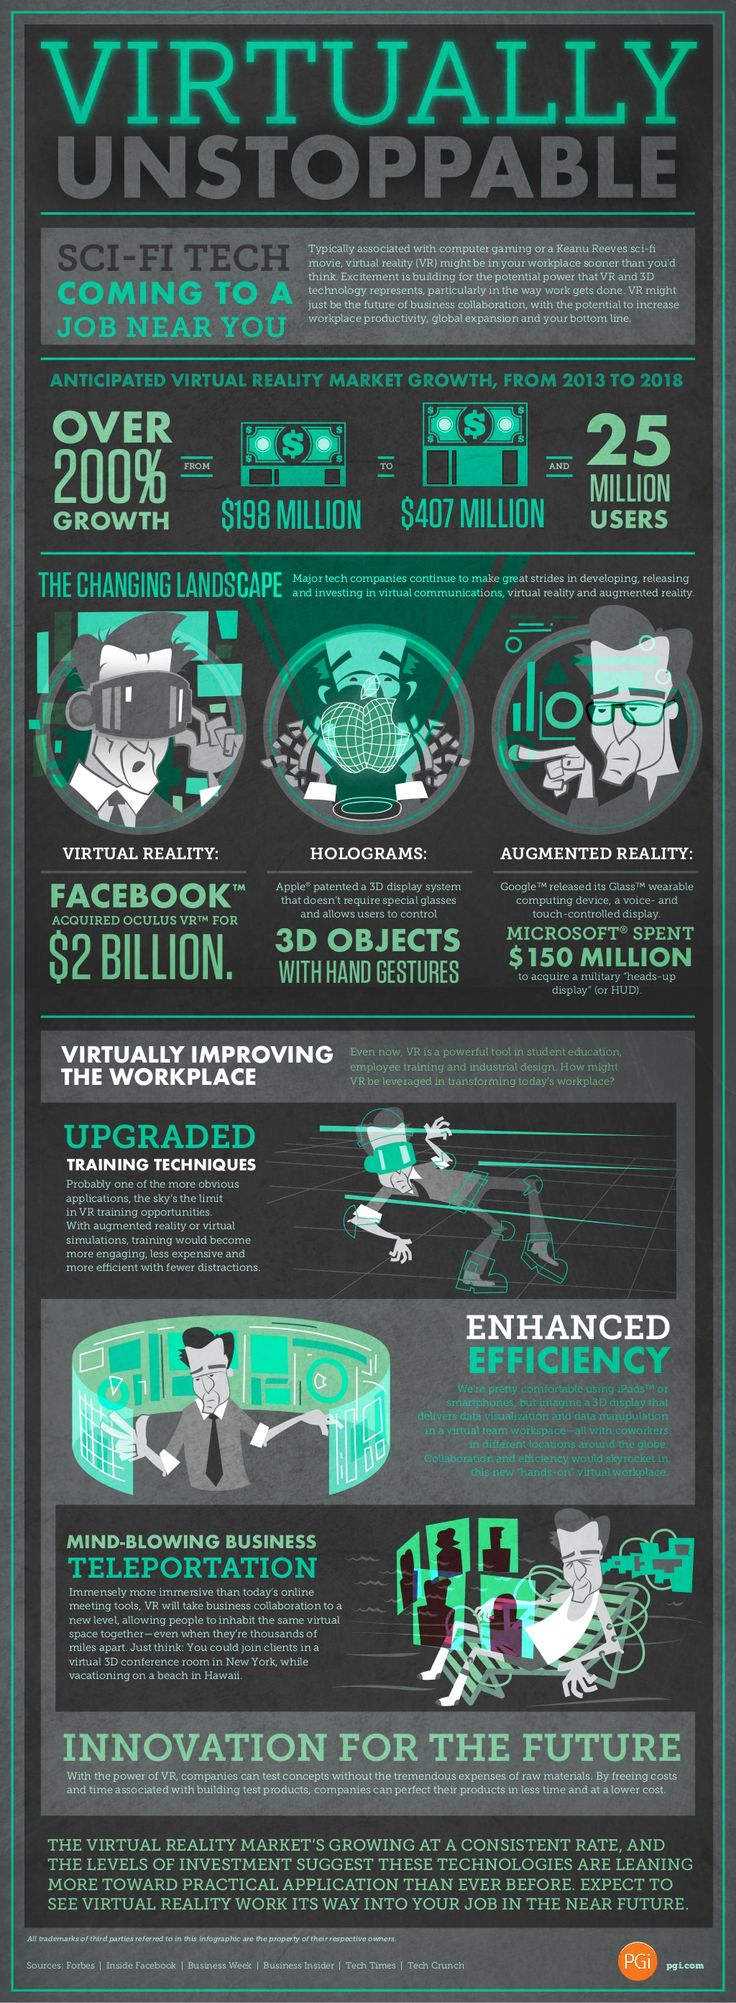 How Virtual Reality Might Change the Way You Work (Infographic) | Inc.com